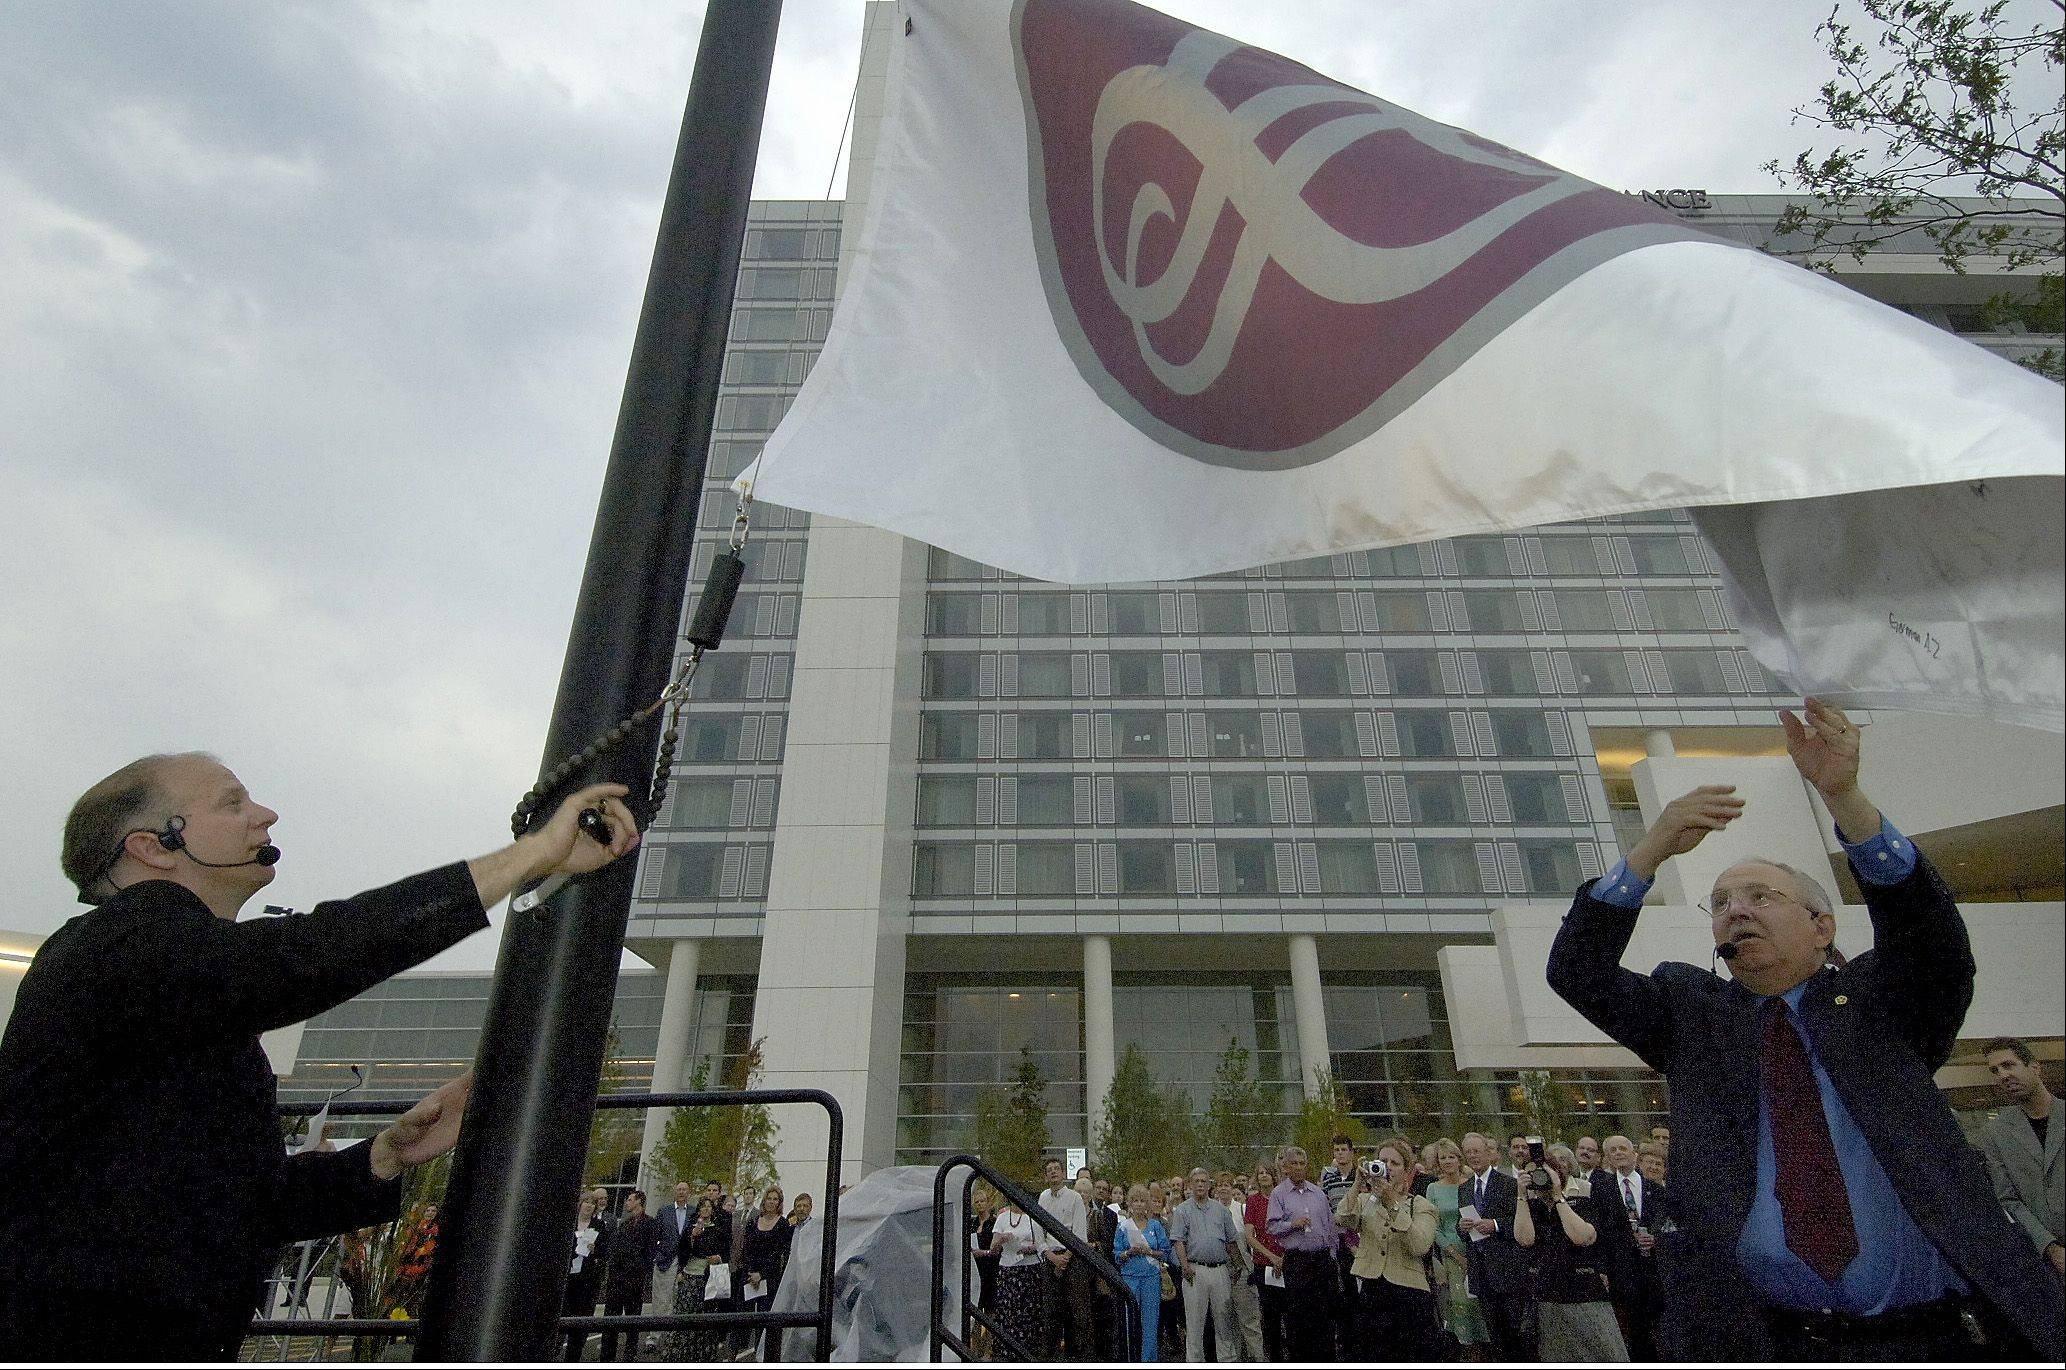 Renaissance Hotel's General Manager Tom Robertson, left, and Schaumburg Village President Al Larson raised the Renaissance Hotel flag during an opening ceremony at the 2006 grand opening of the Schaumburg Convention Center and Renaissance Hotel.